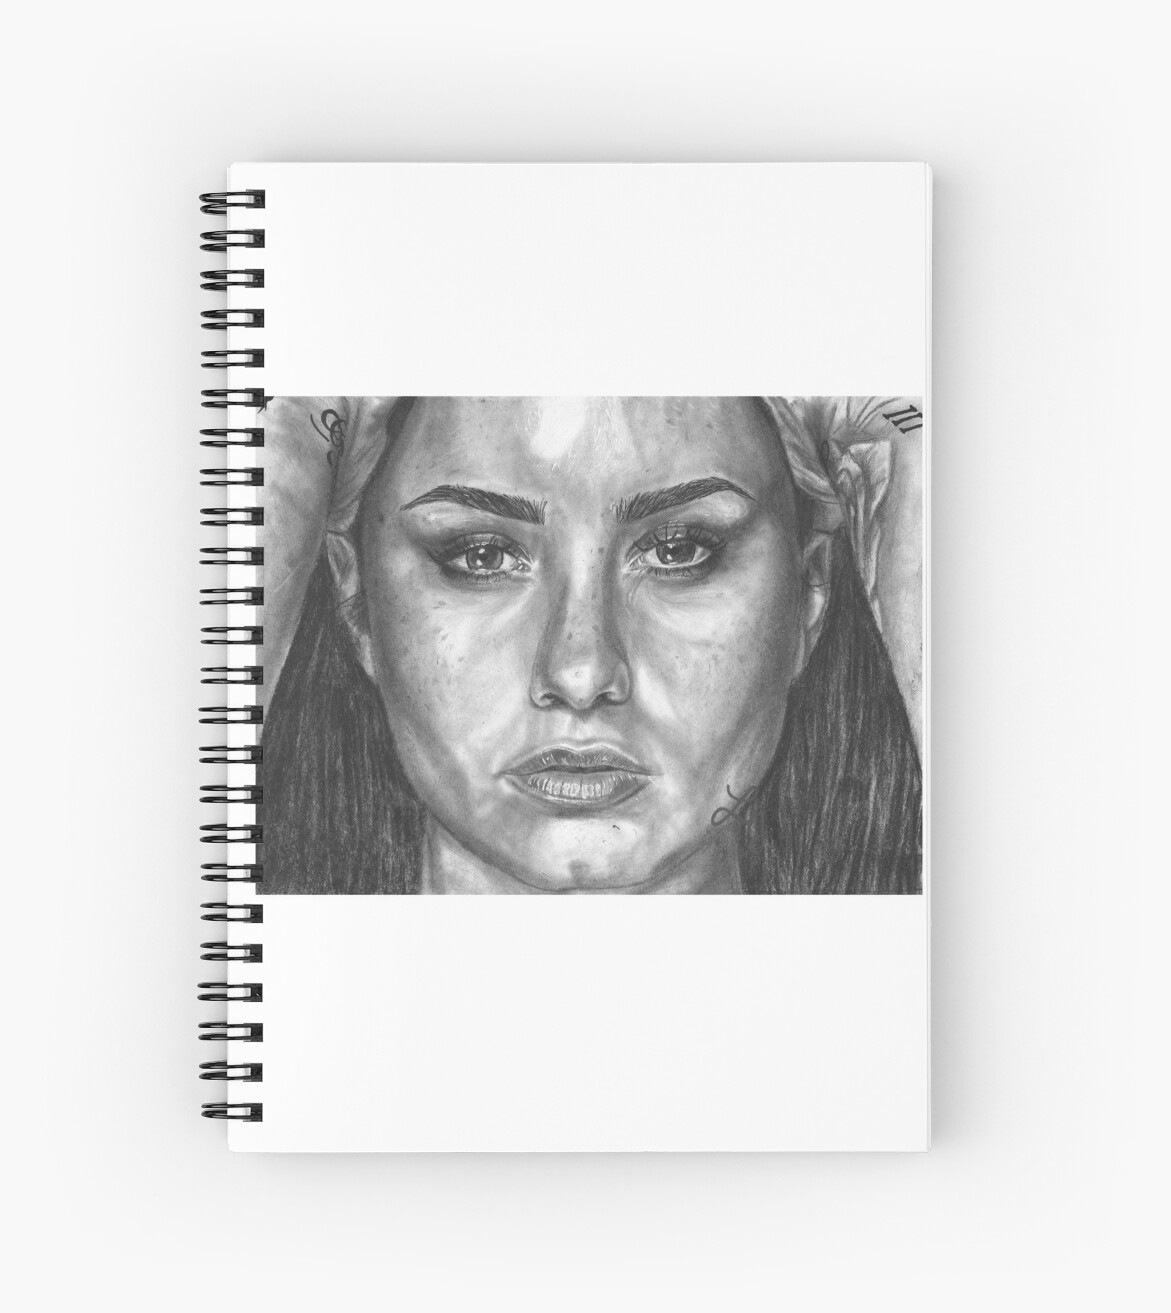 Demi Lovato Fan Art Spiral Notebook By Lisedraws